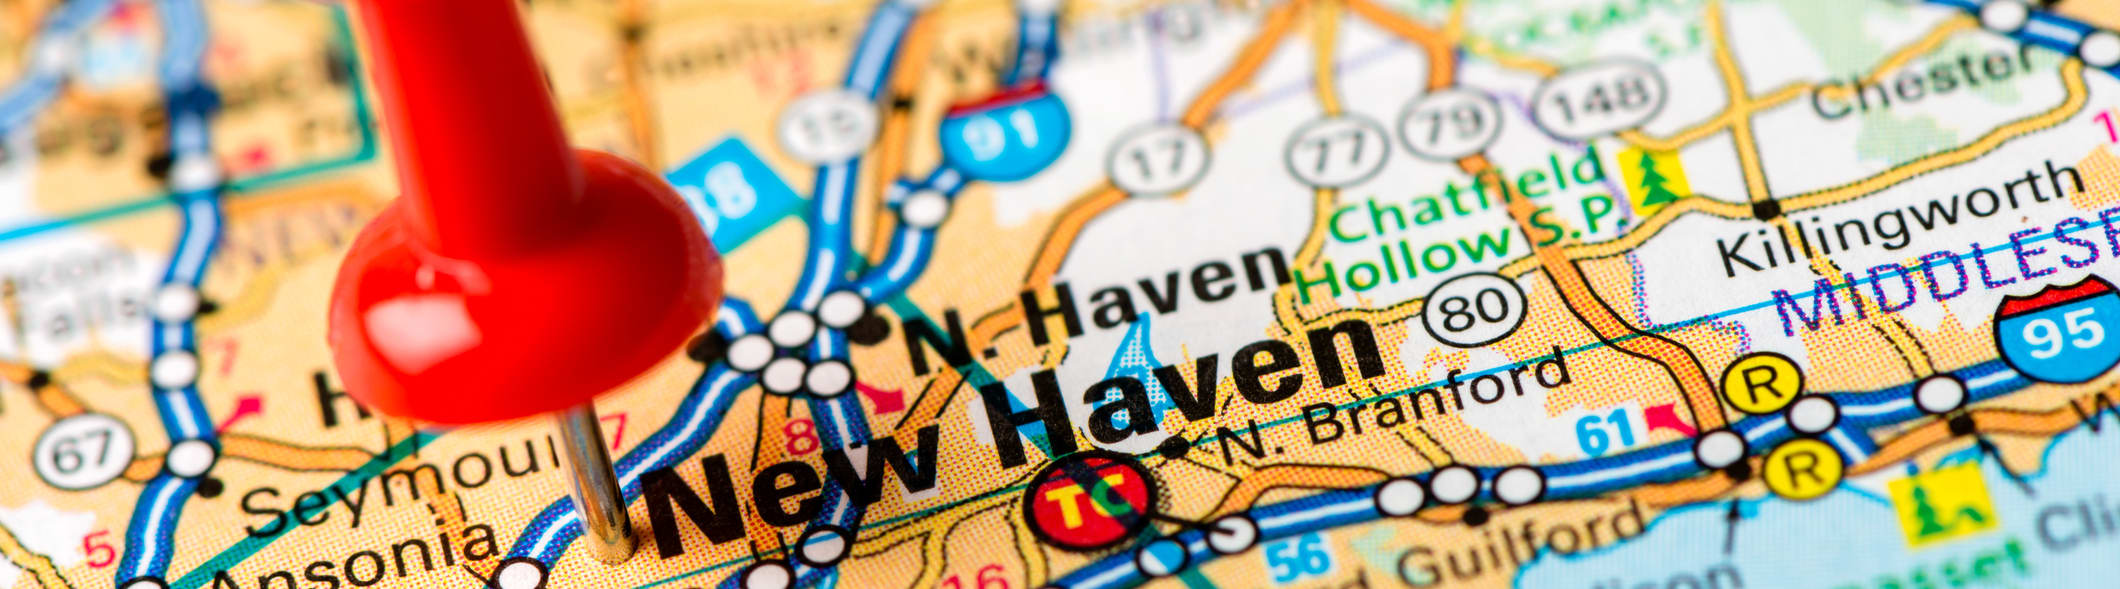 New Haven Connecticut map pin